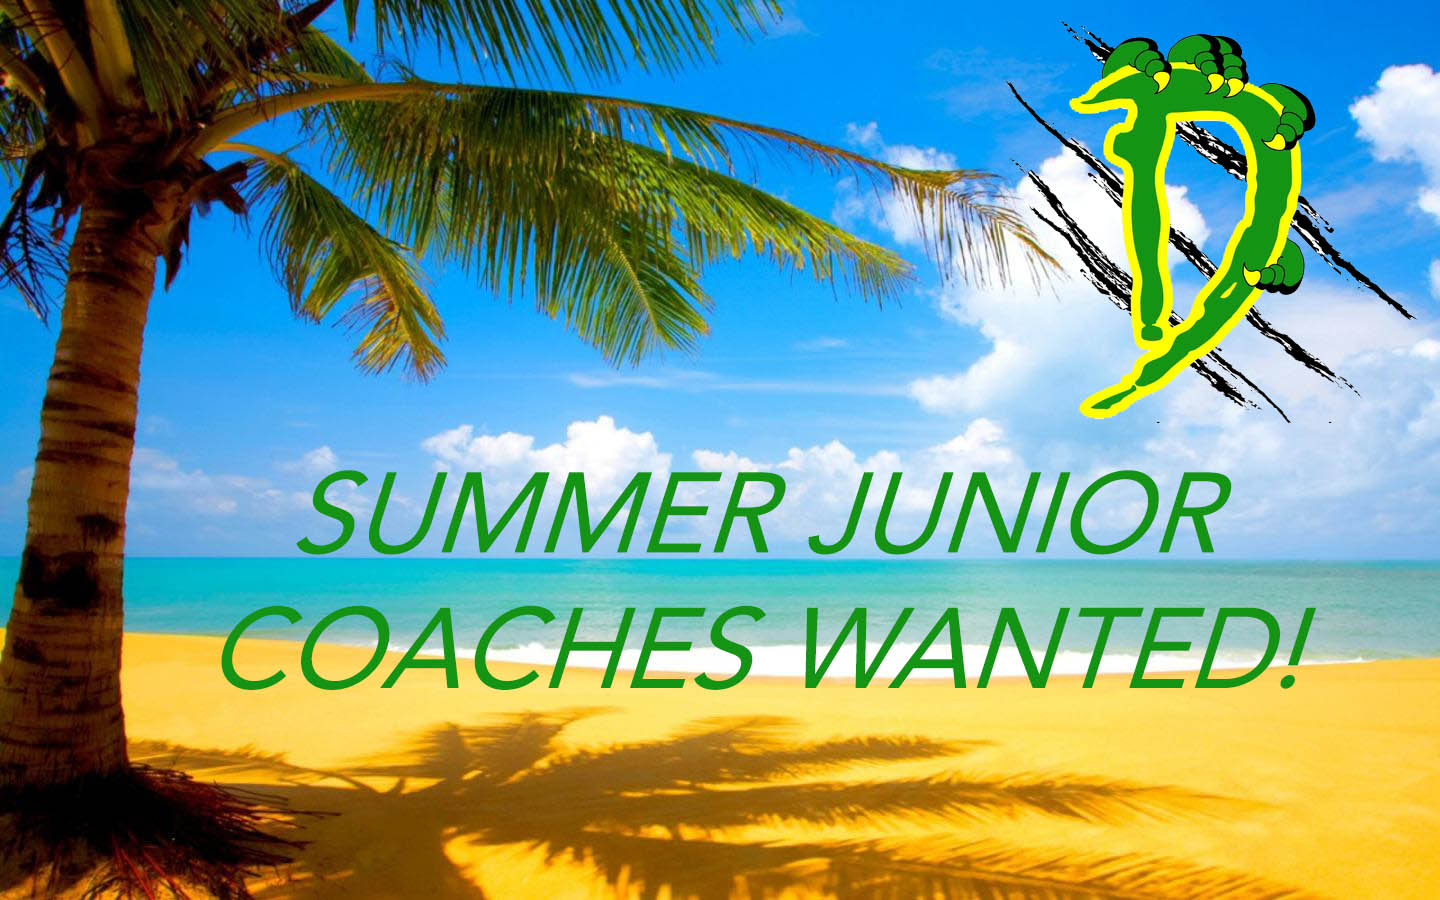 Summer junior coaches wanted!